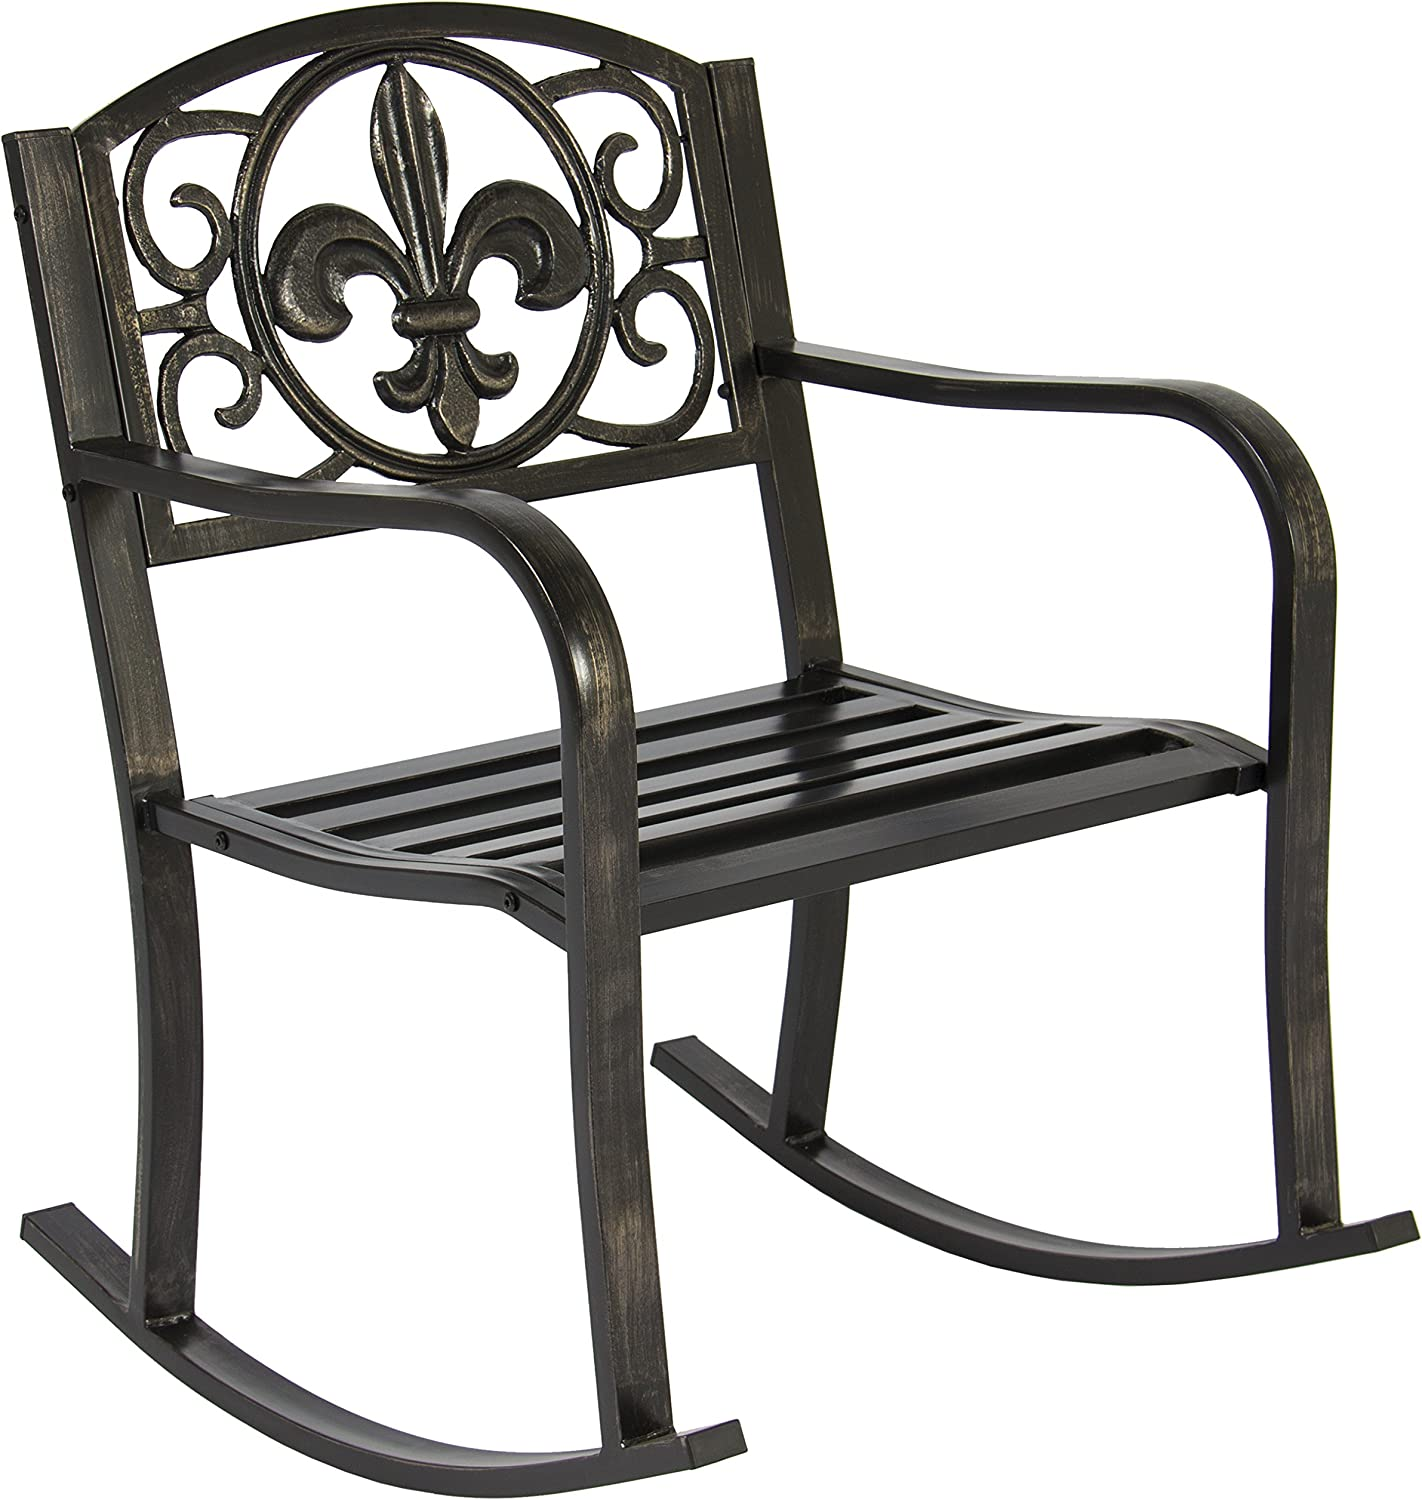 Best Choice Products Metal Rocking Chair Seat for Patio, Porch, Deck, Outdoor w Scroll Design – Black Bronze